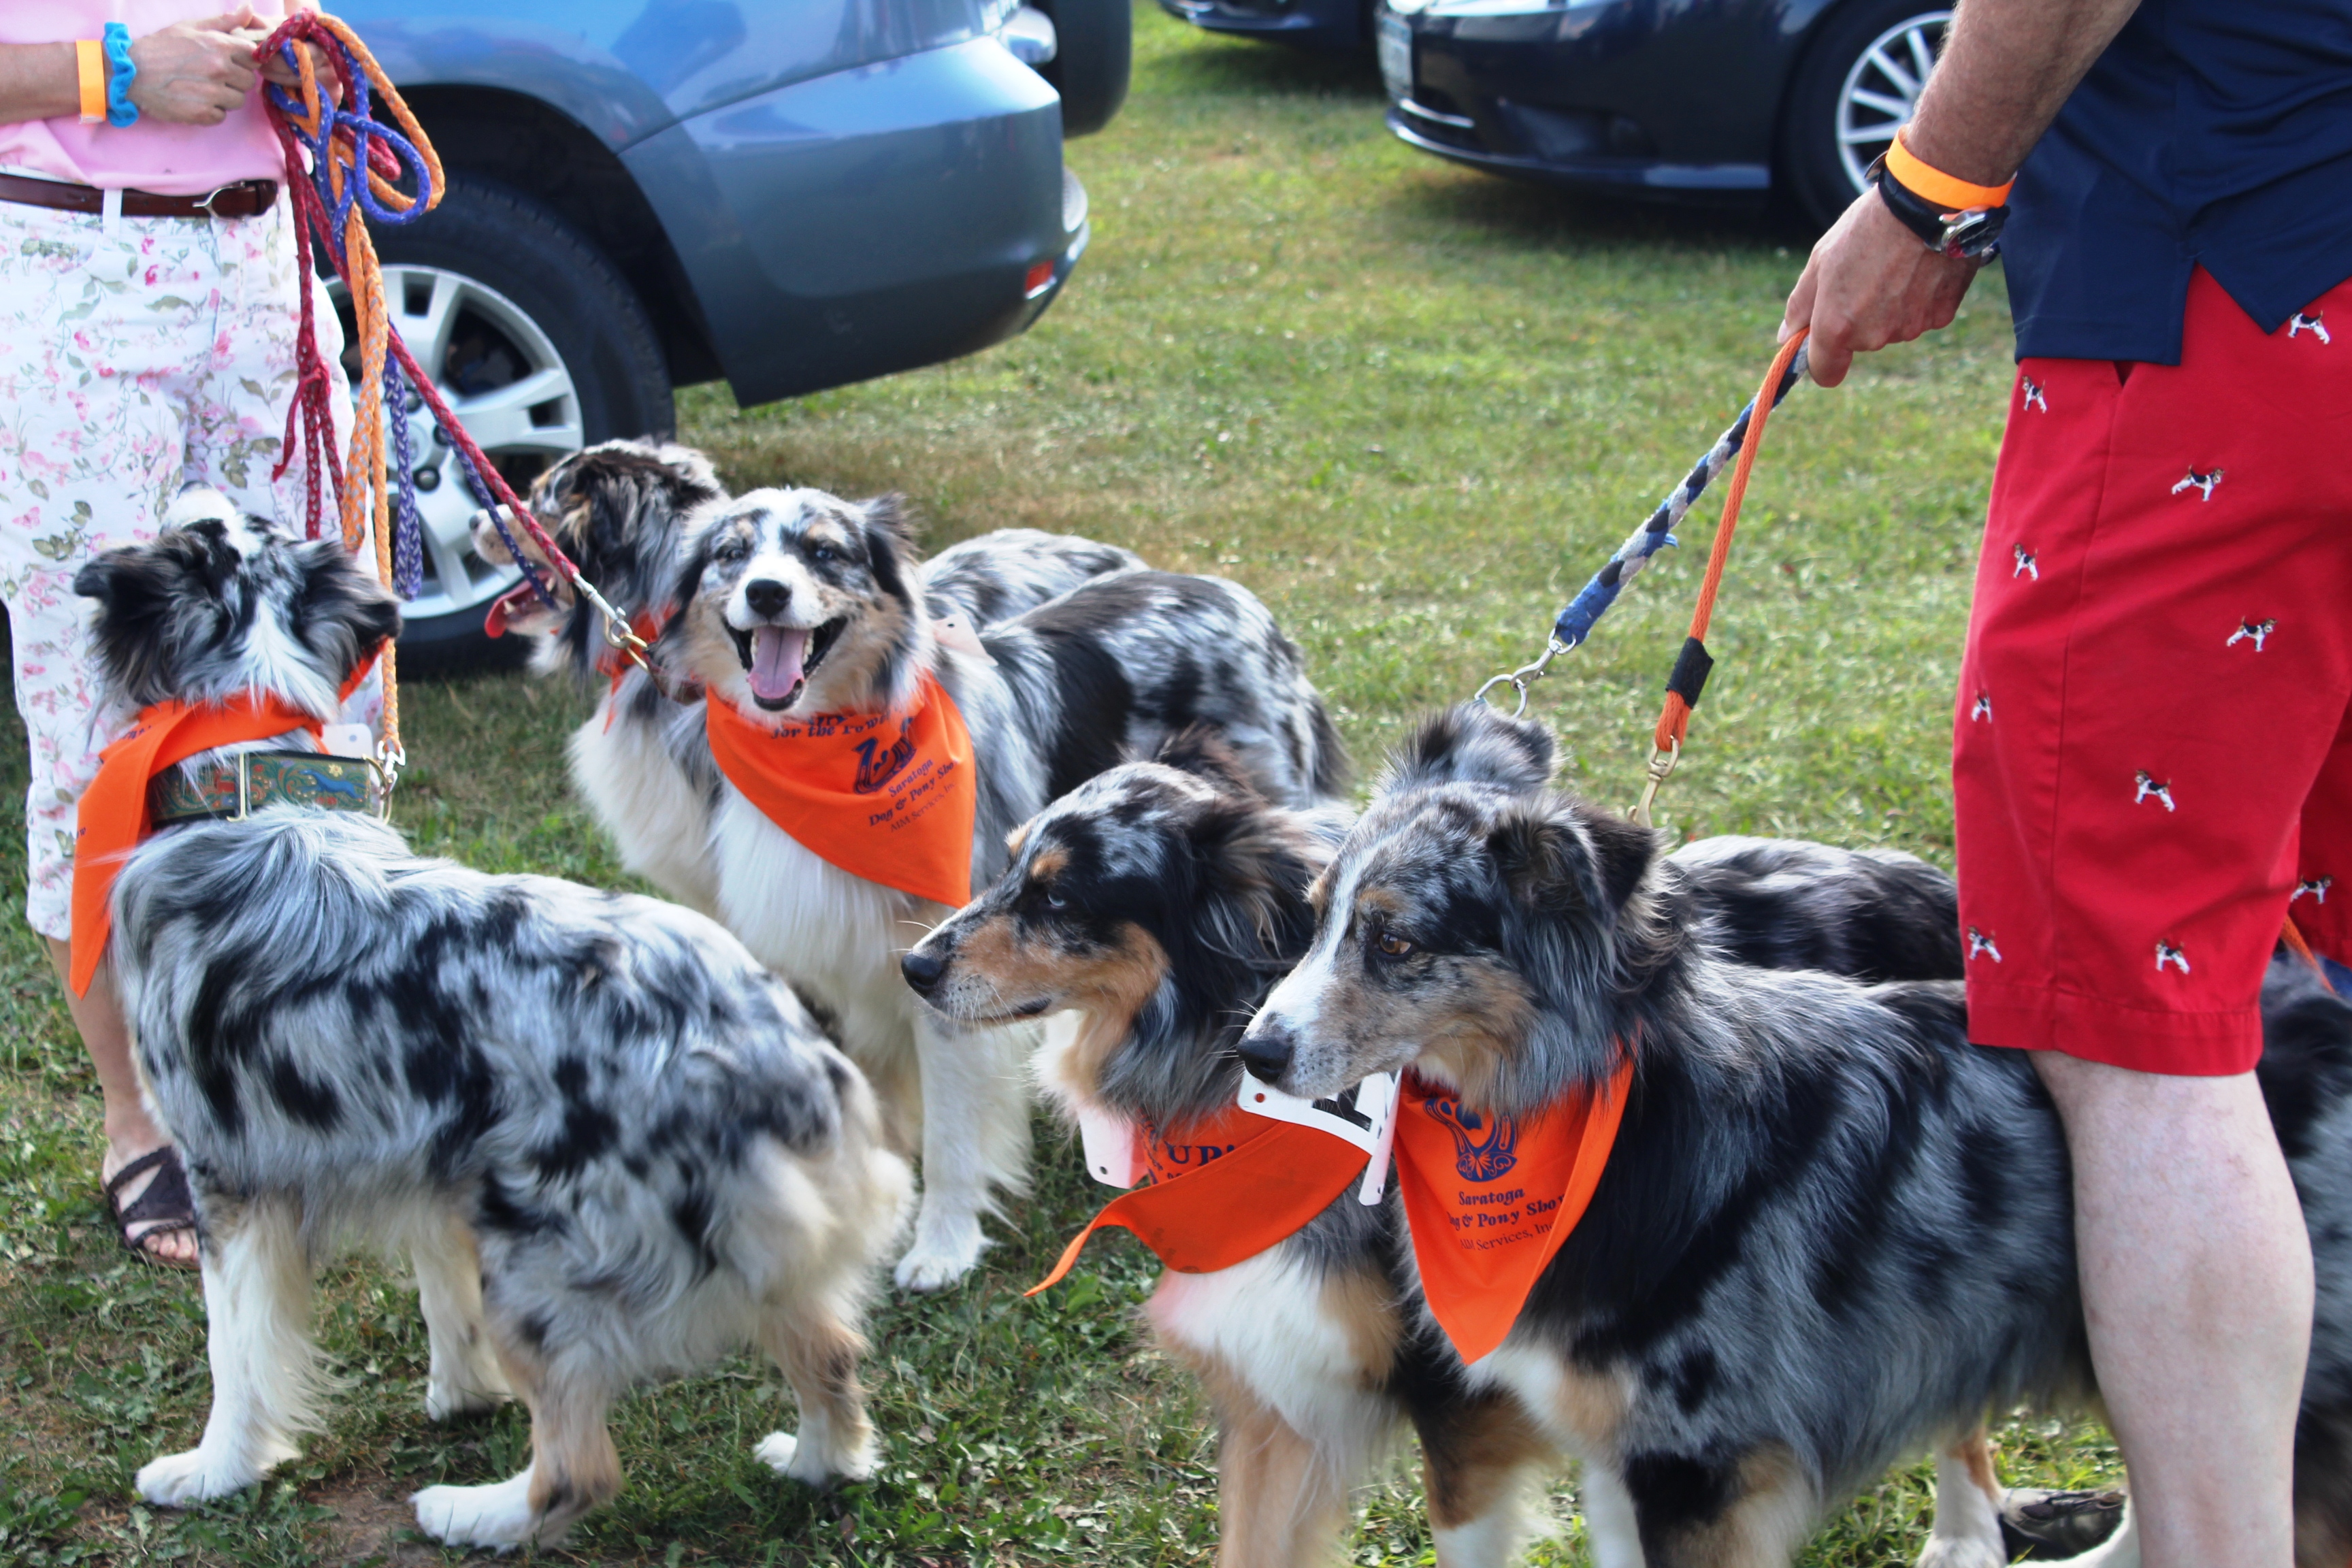 Litter of dogs ready to show at the Saratoga Dog's Pony Show to benefit AIM Services, Inc.